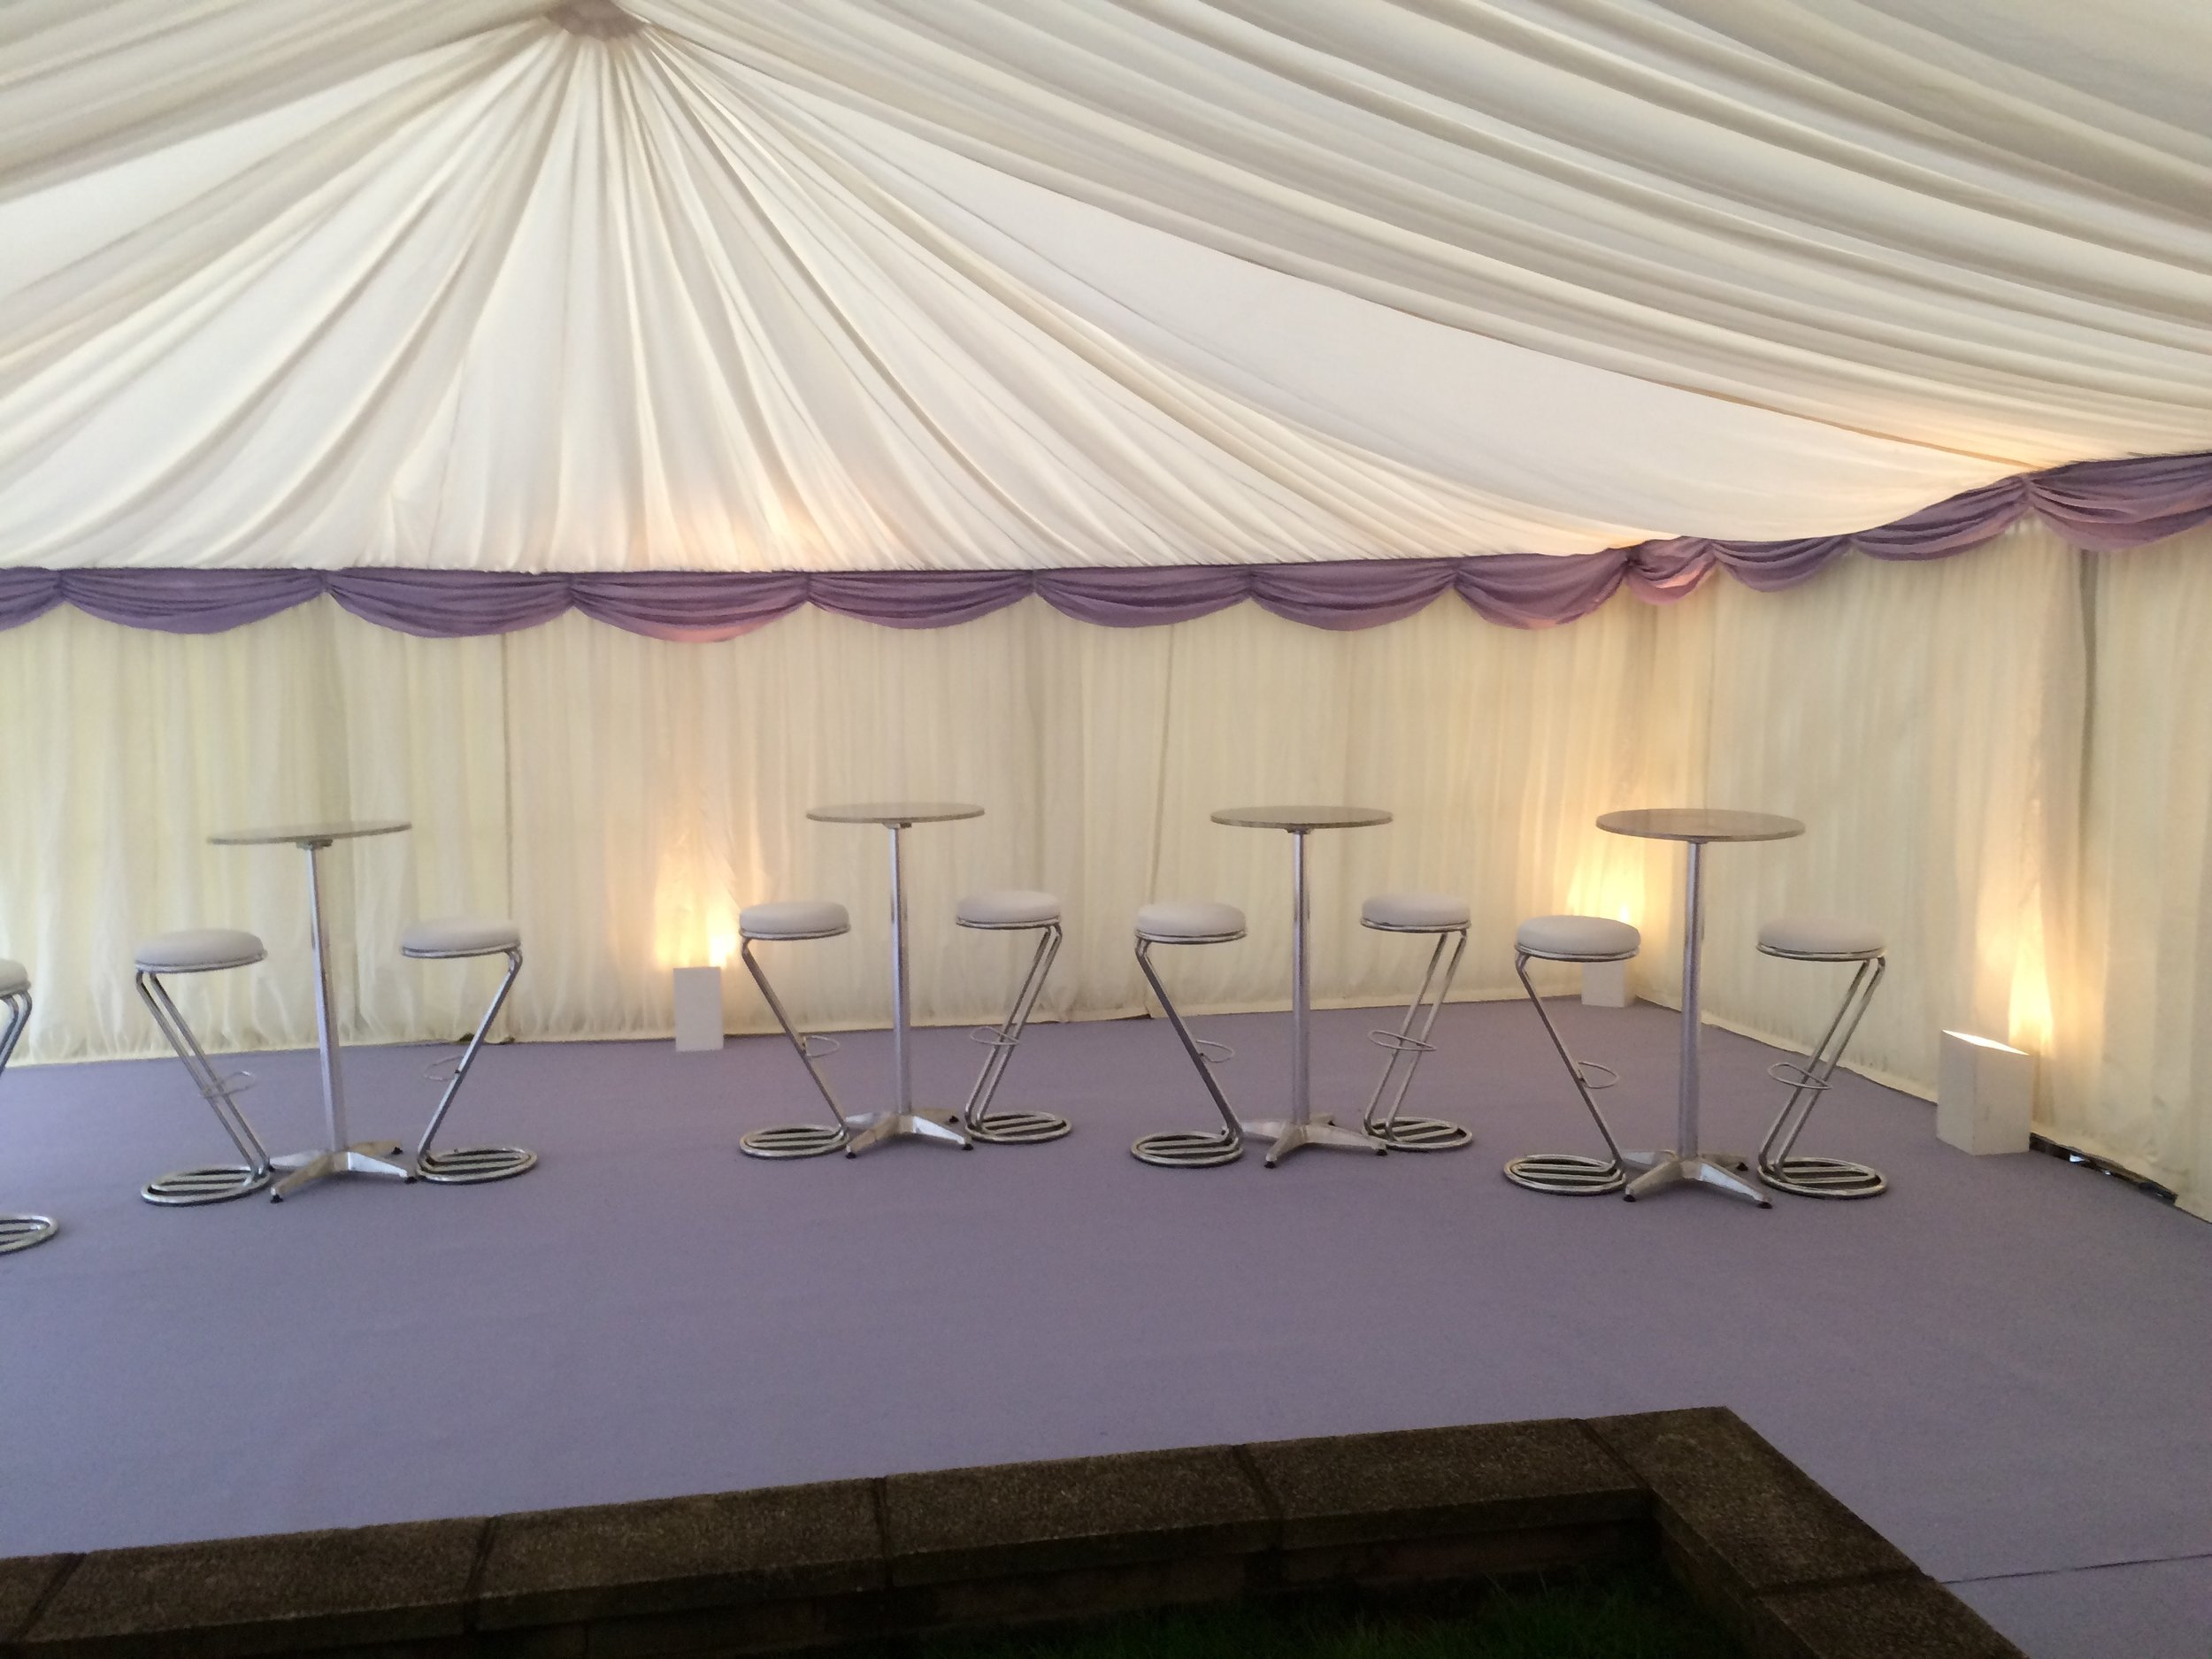 Standard Uplighters - Uplighters are great as they are placed around the perimeter of the marquee on the floor and wash up the walls onto the ceiling creating a contemporary feel to any event. Ideal for use in front of or behind marquee wall linings